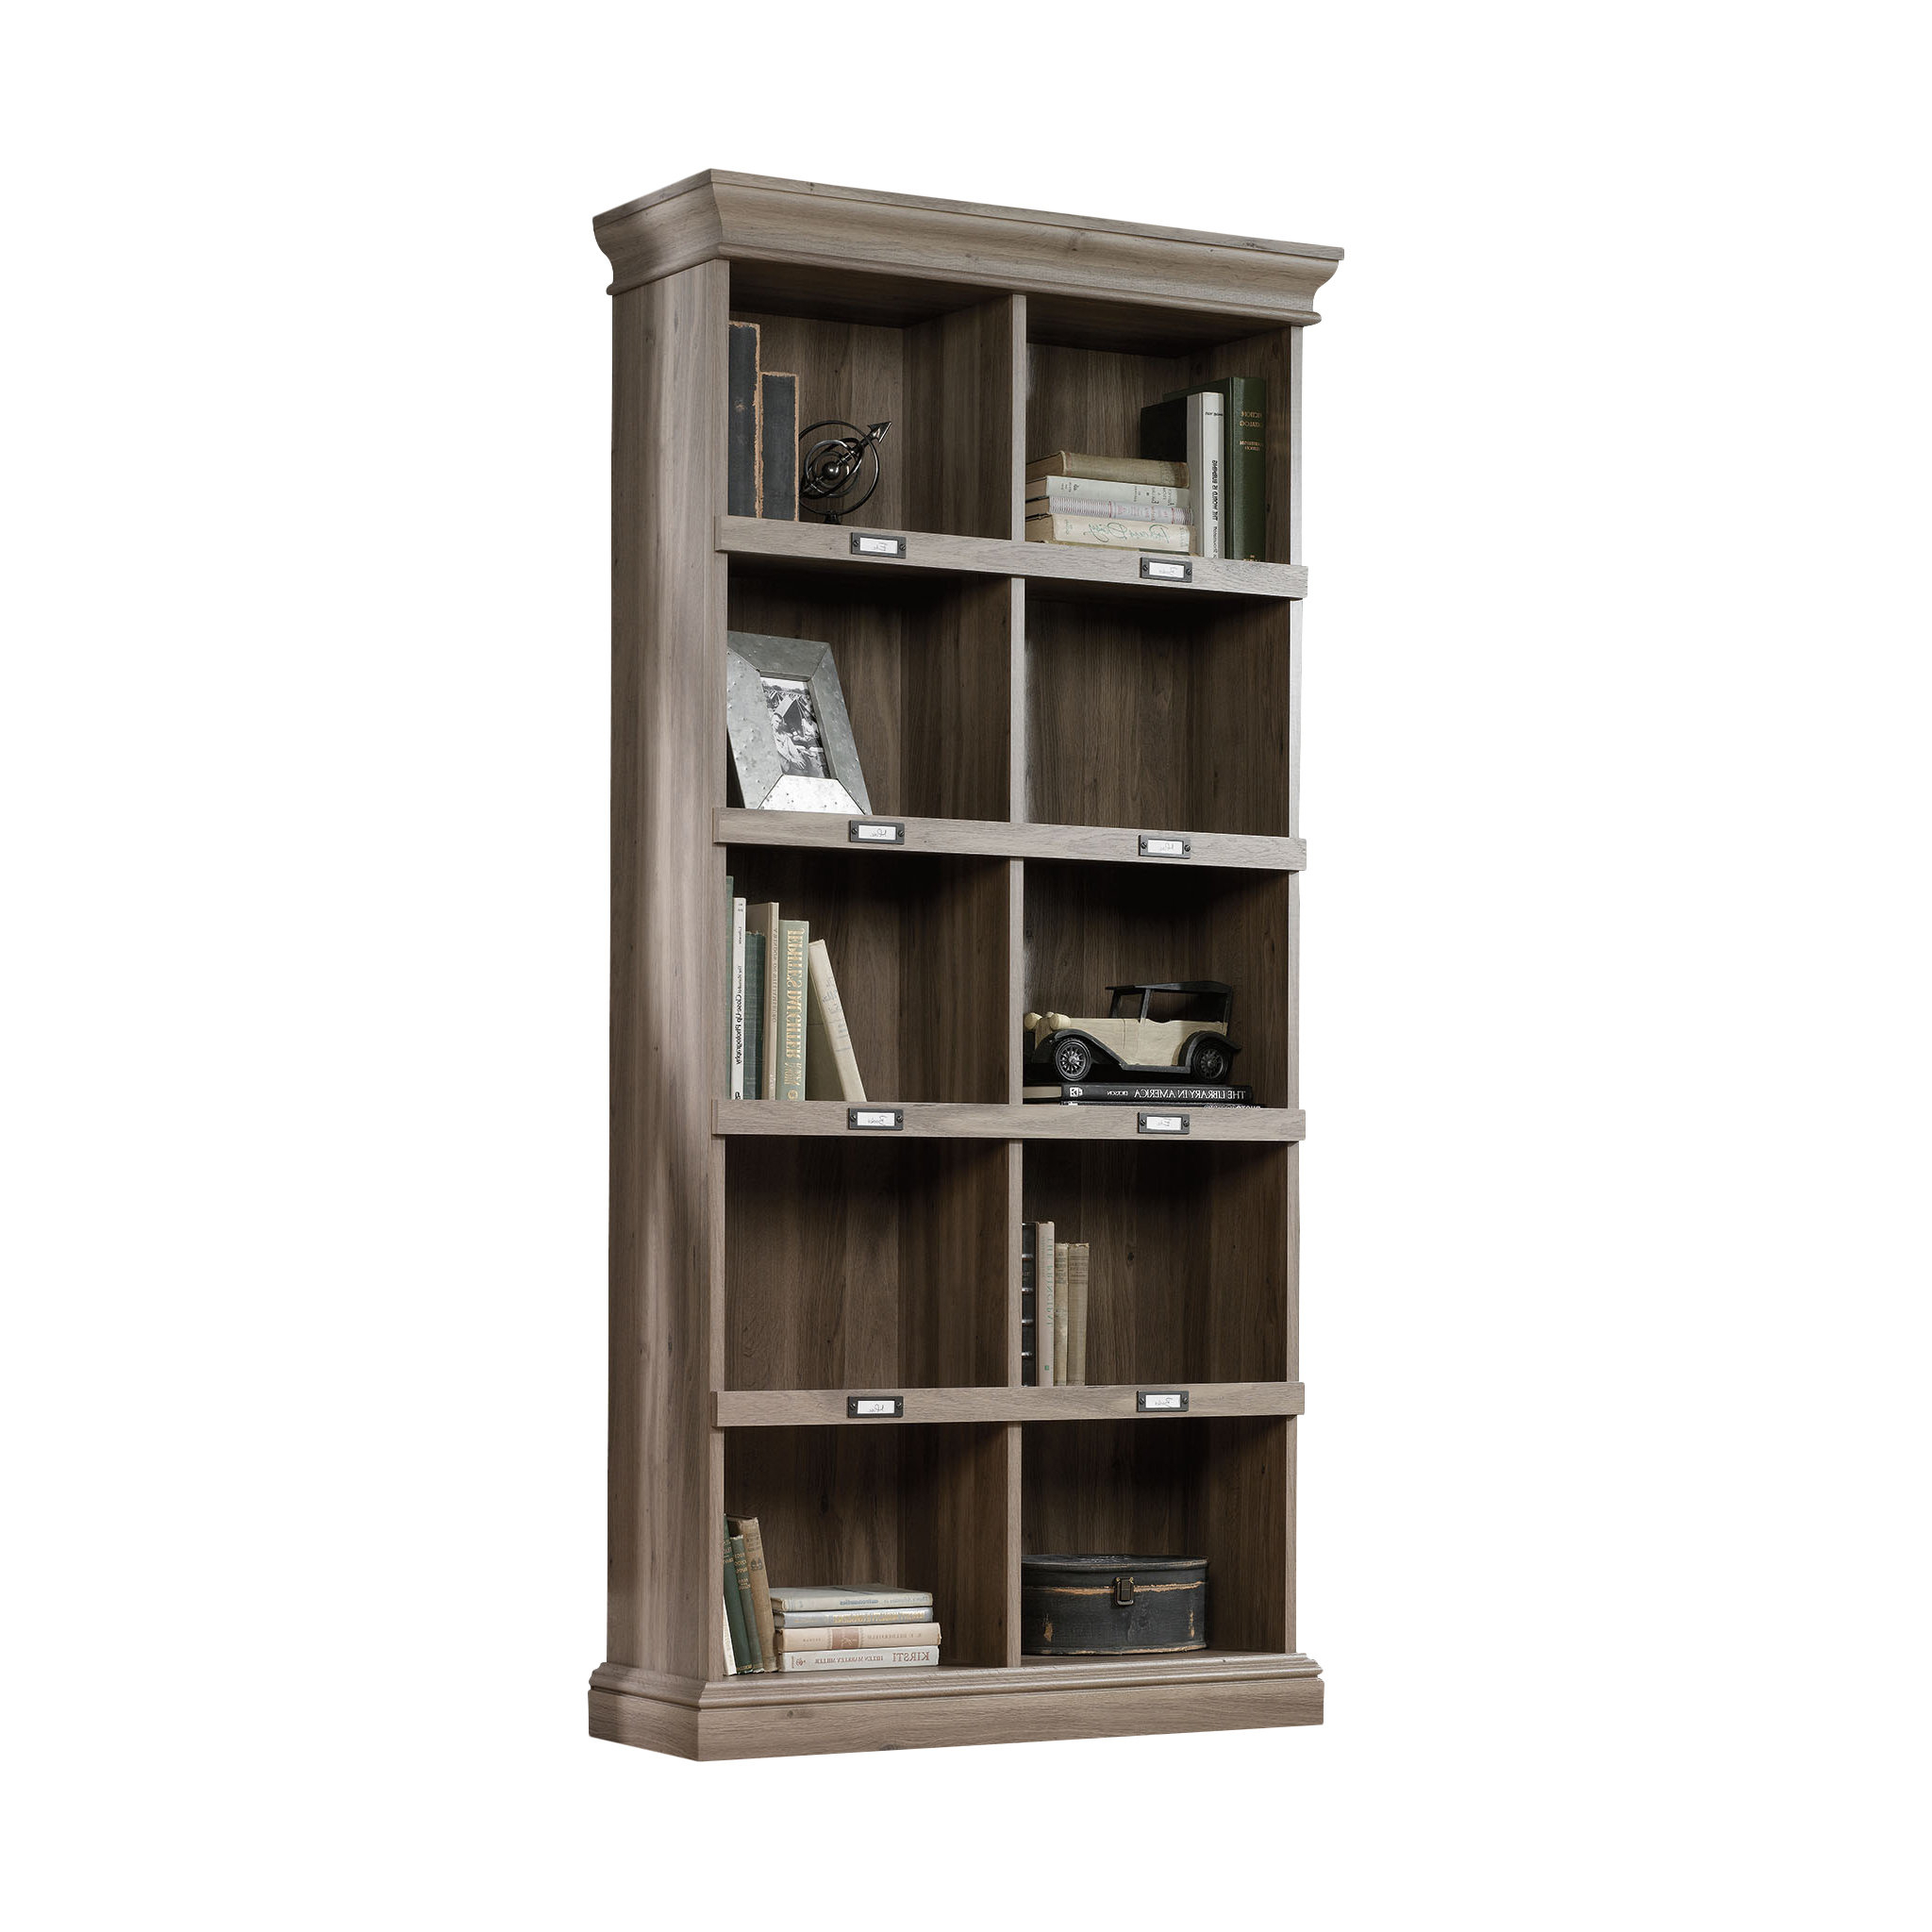 Bowerbank Standard Bookcase With Regard To Most Current Standard Bookcases (View 3 of 20)